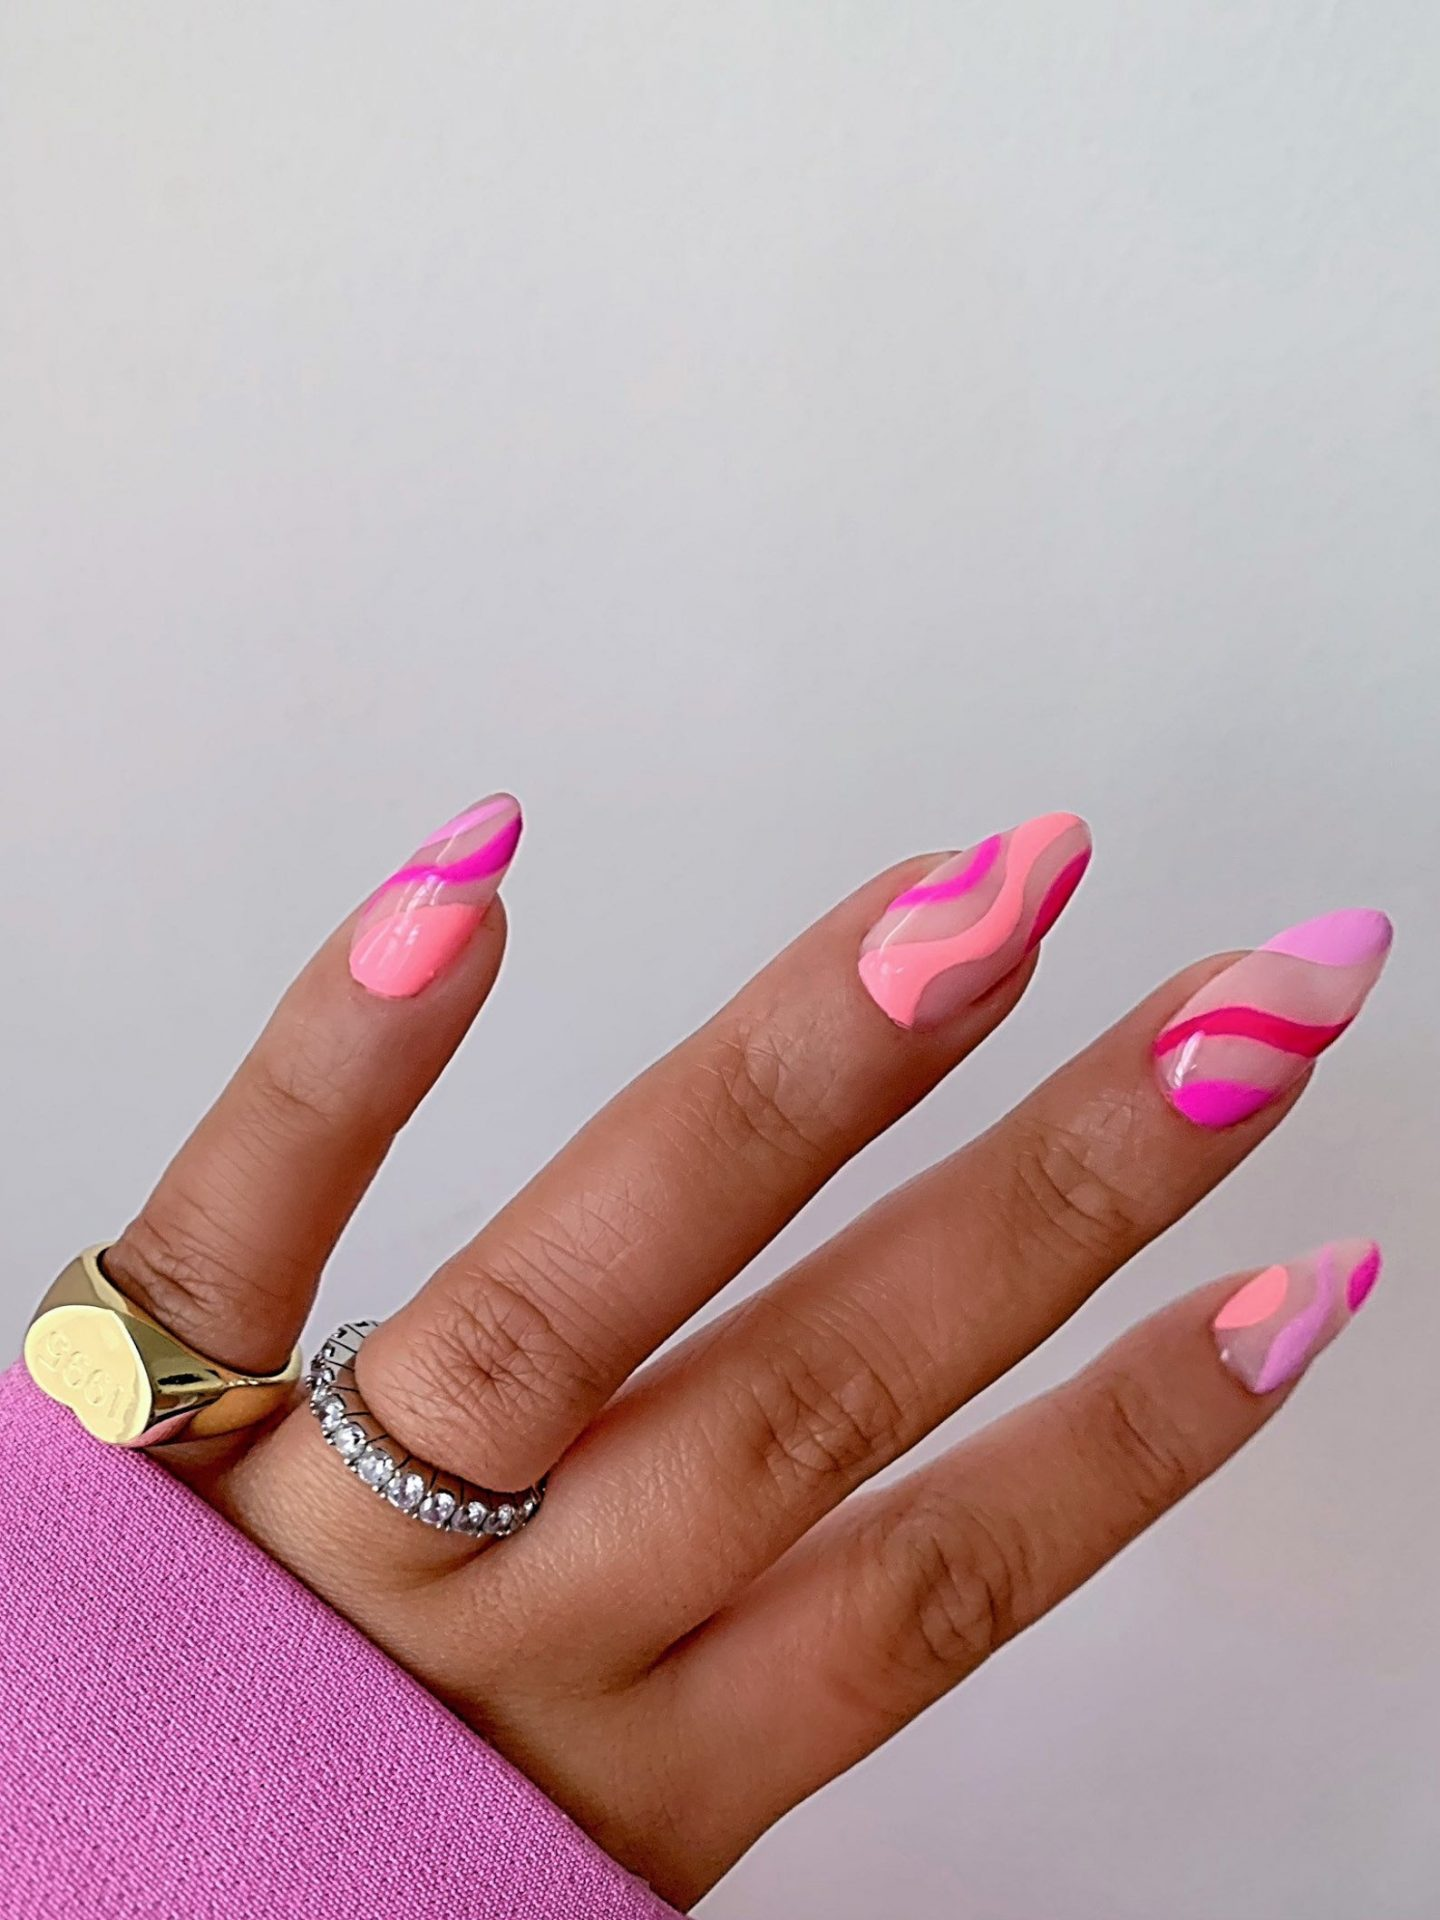 Neon pink abstract nails with swirls